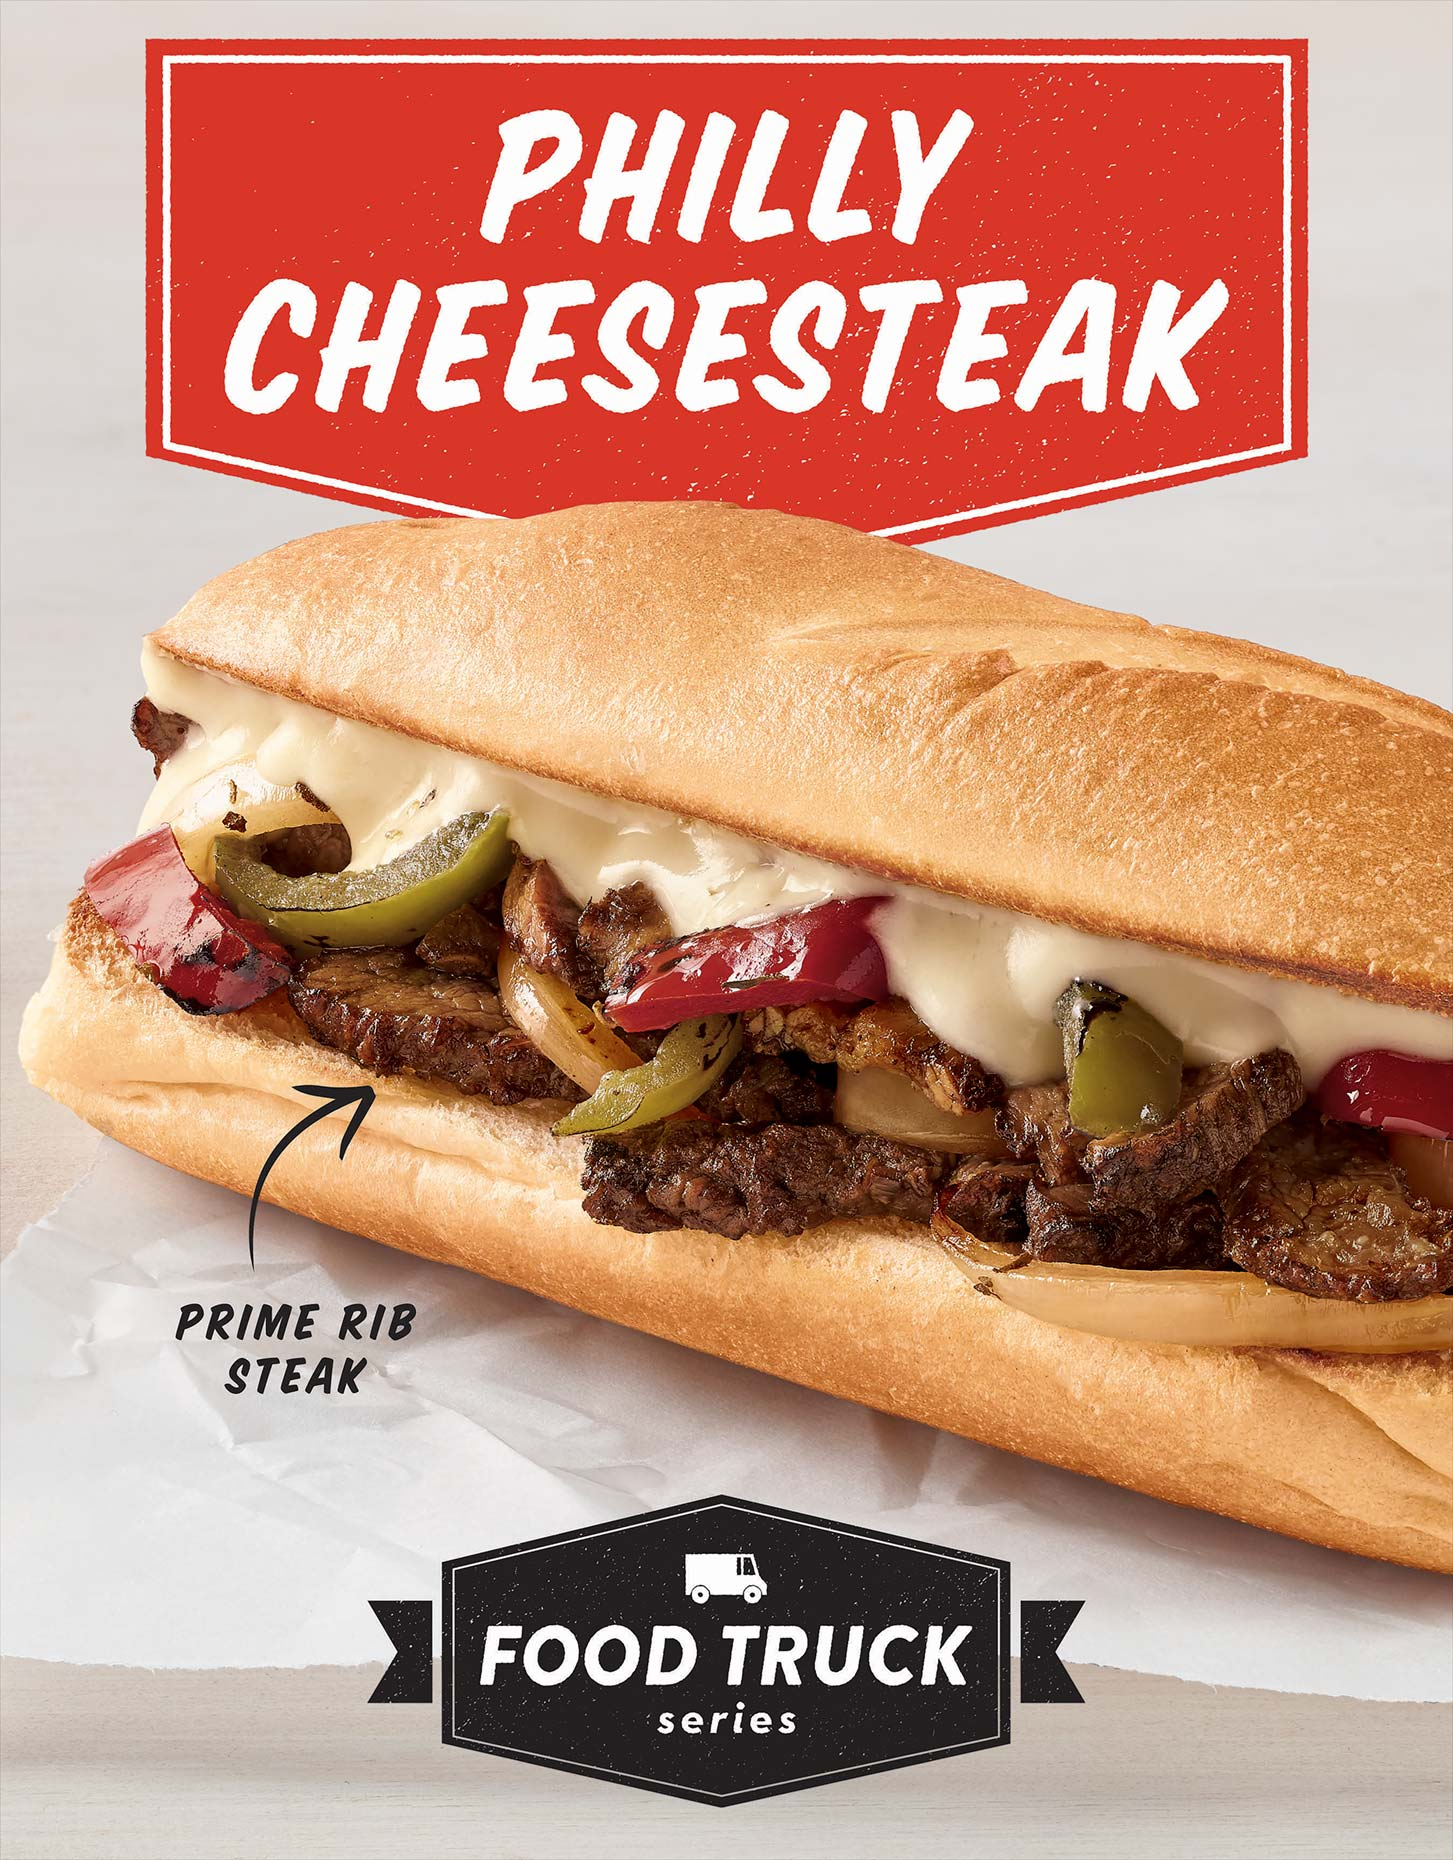 Philly_Cheesesteak_mid_angle_white_Composed_Helicon.jpg